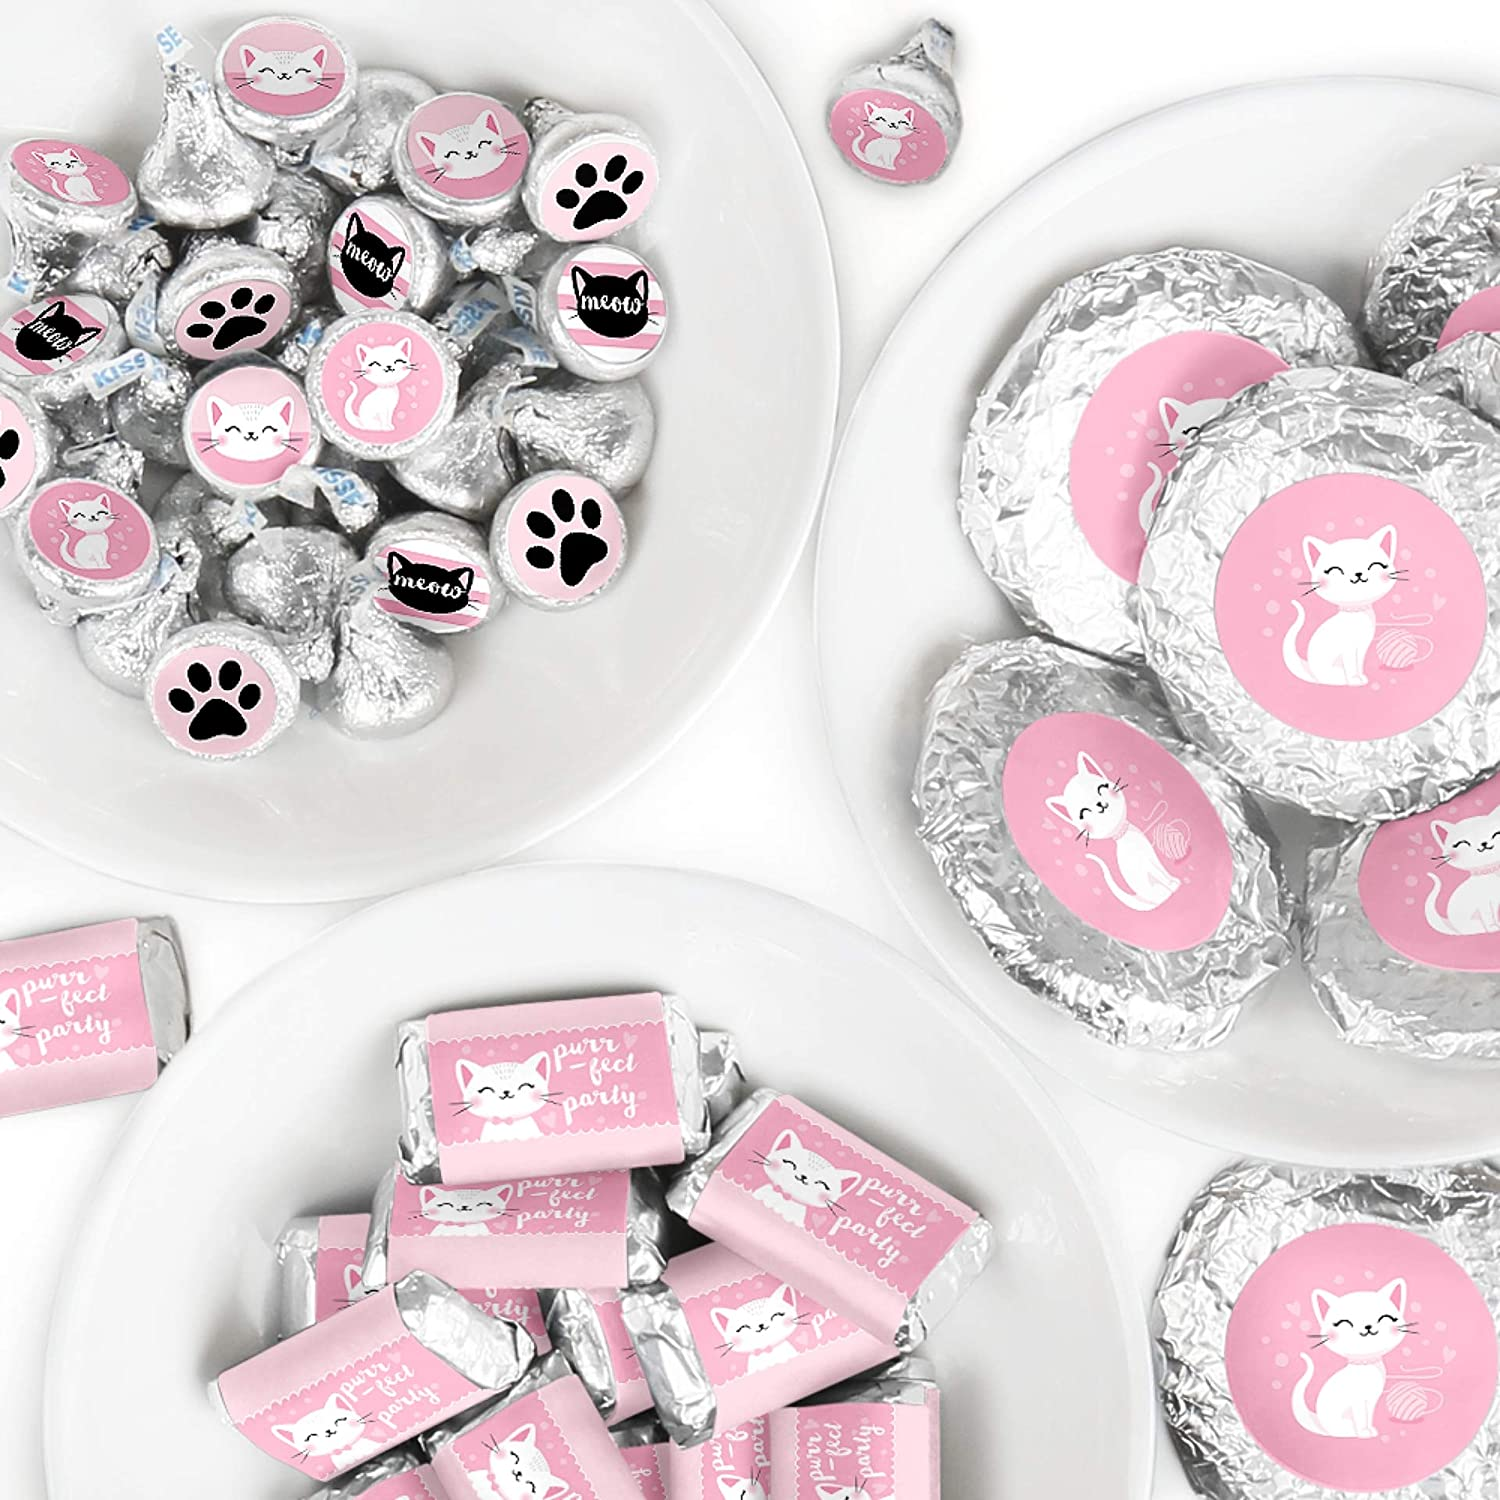 Big Dot of Happiness Purr-fect Kitty Cat - Mini Candy Bar Wrappers, Round Candy Stickers and Circle Stickers - Kitten Meow Baby Shower or Birthday Party Candy Favor Sticker Kit - 304 Pieces